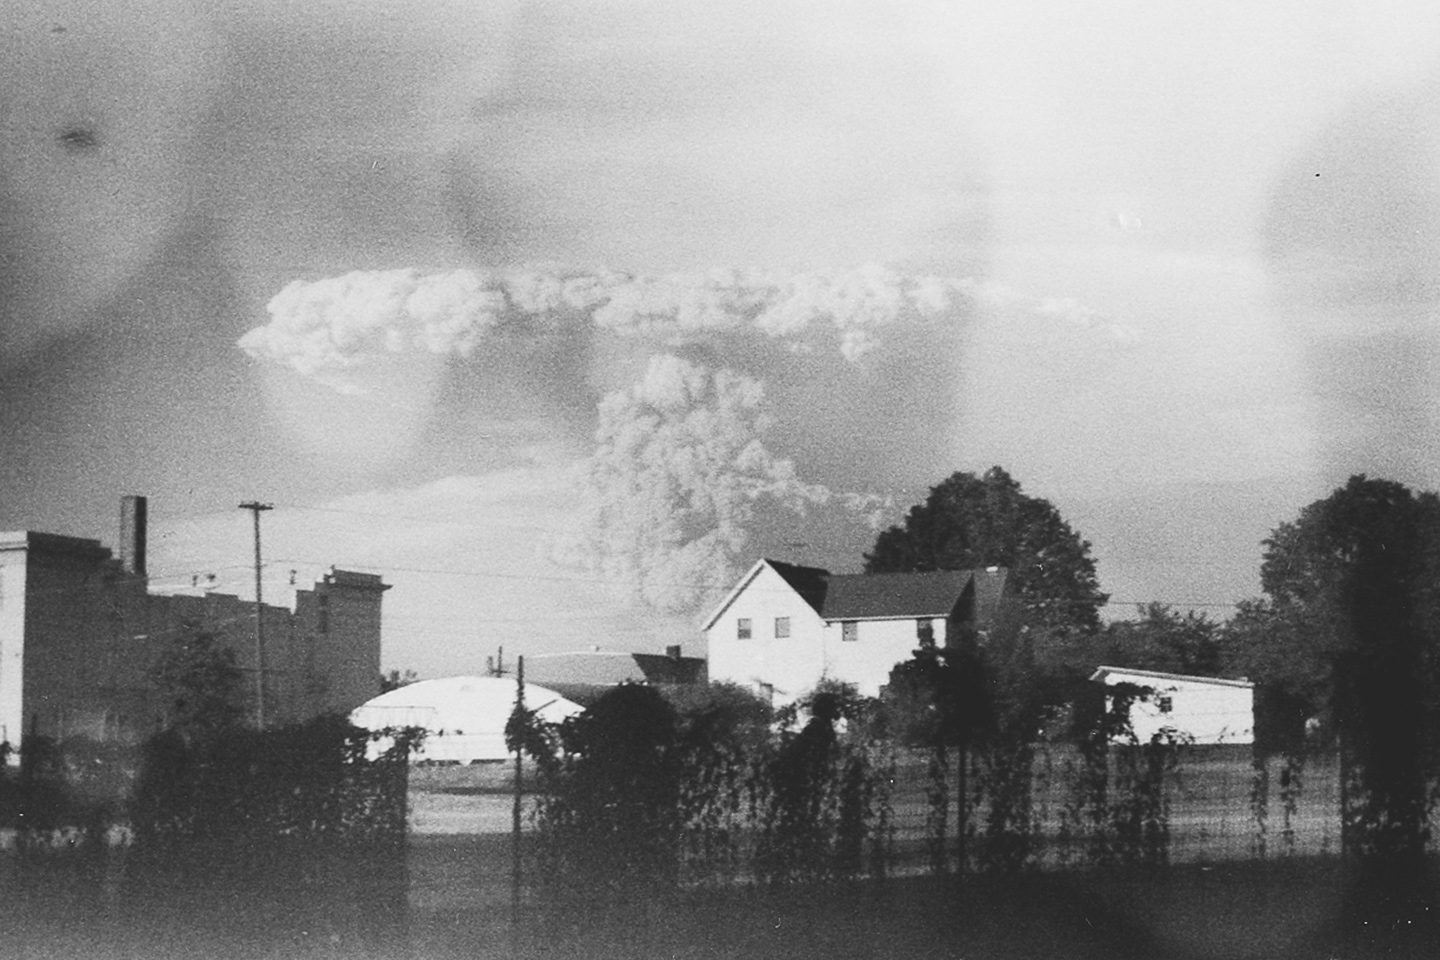 Mount St. Helens Eruption Photos